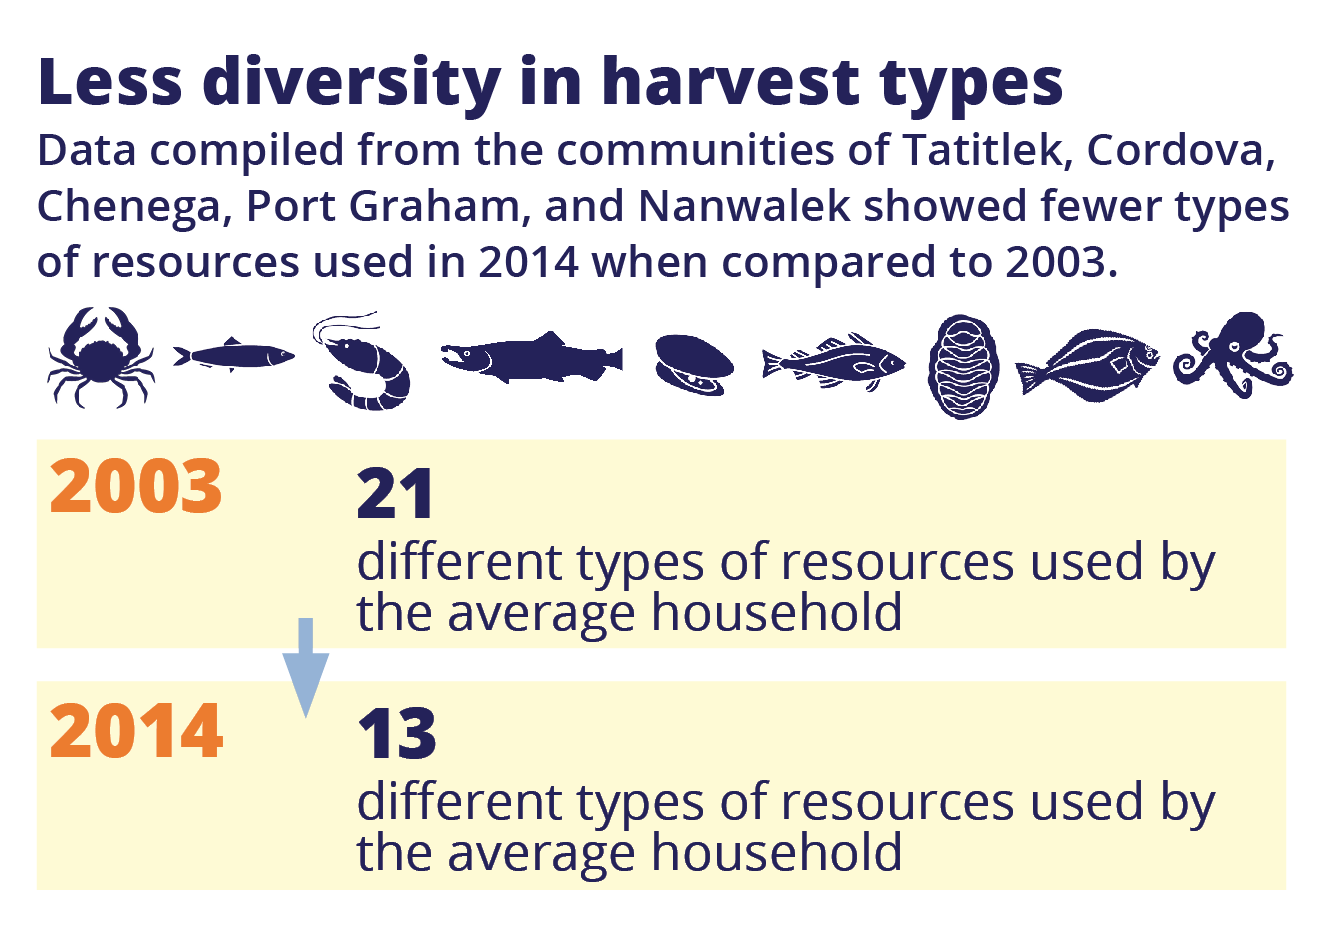 This graphic image demonstrates how the number of different resources harvested by the average household decreased over time. In 2003, 21 different types of resources were harvested. In 2014, the average household harvested just 13 different types. Data compiled from five Alaska communities: Tatitlek, Cordova, Chenega, Port Graham, and Nanwalek.